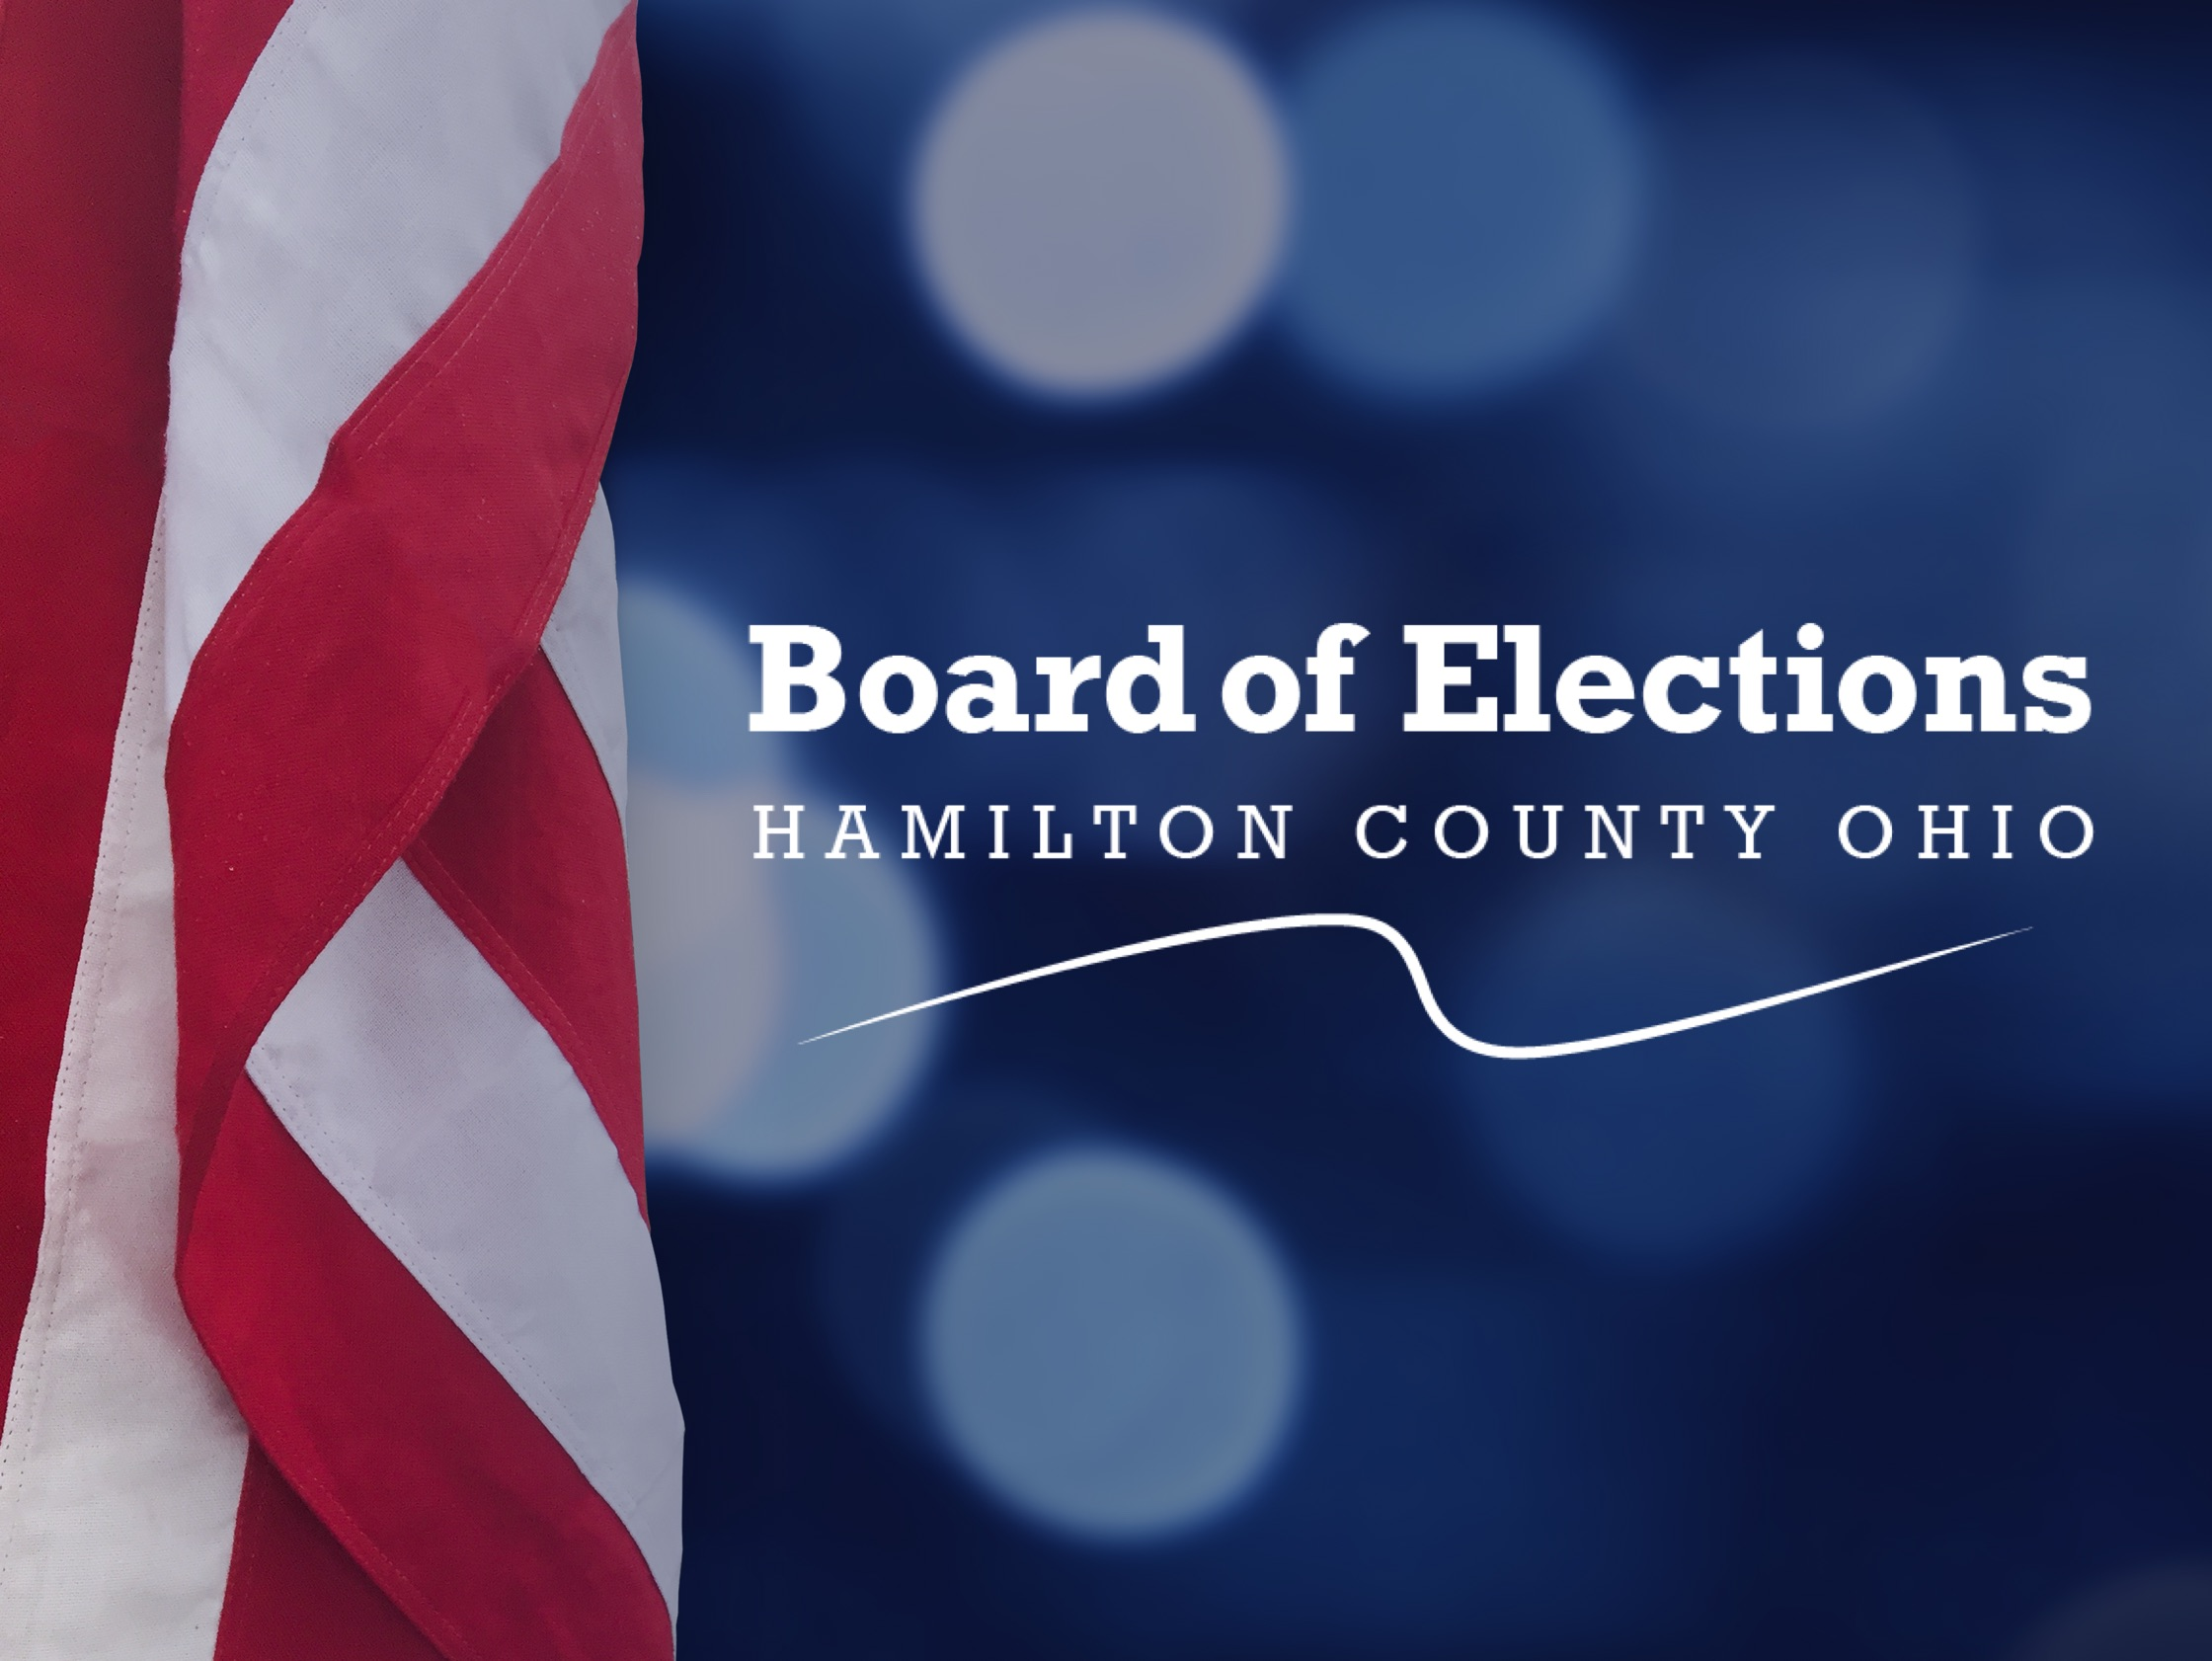 Patriotic image of American flag and Hamilton County Board of Elections logo.